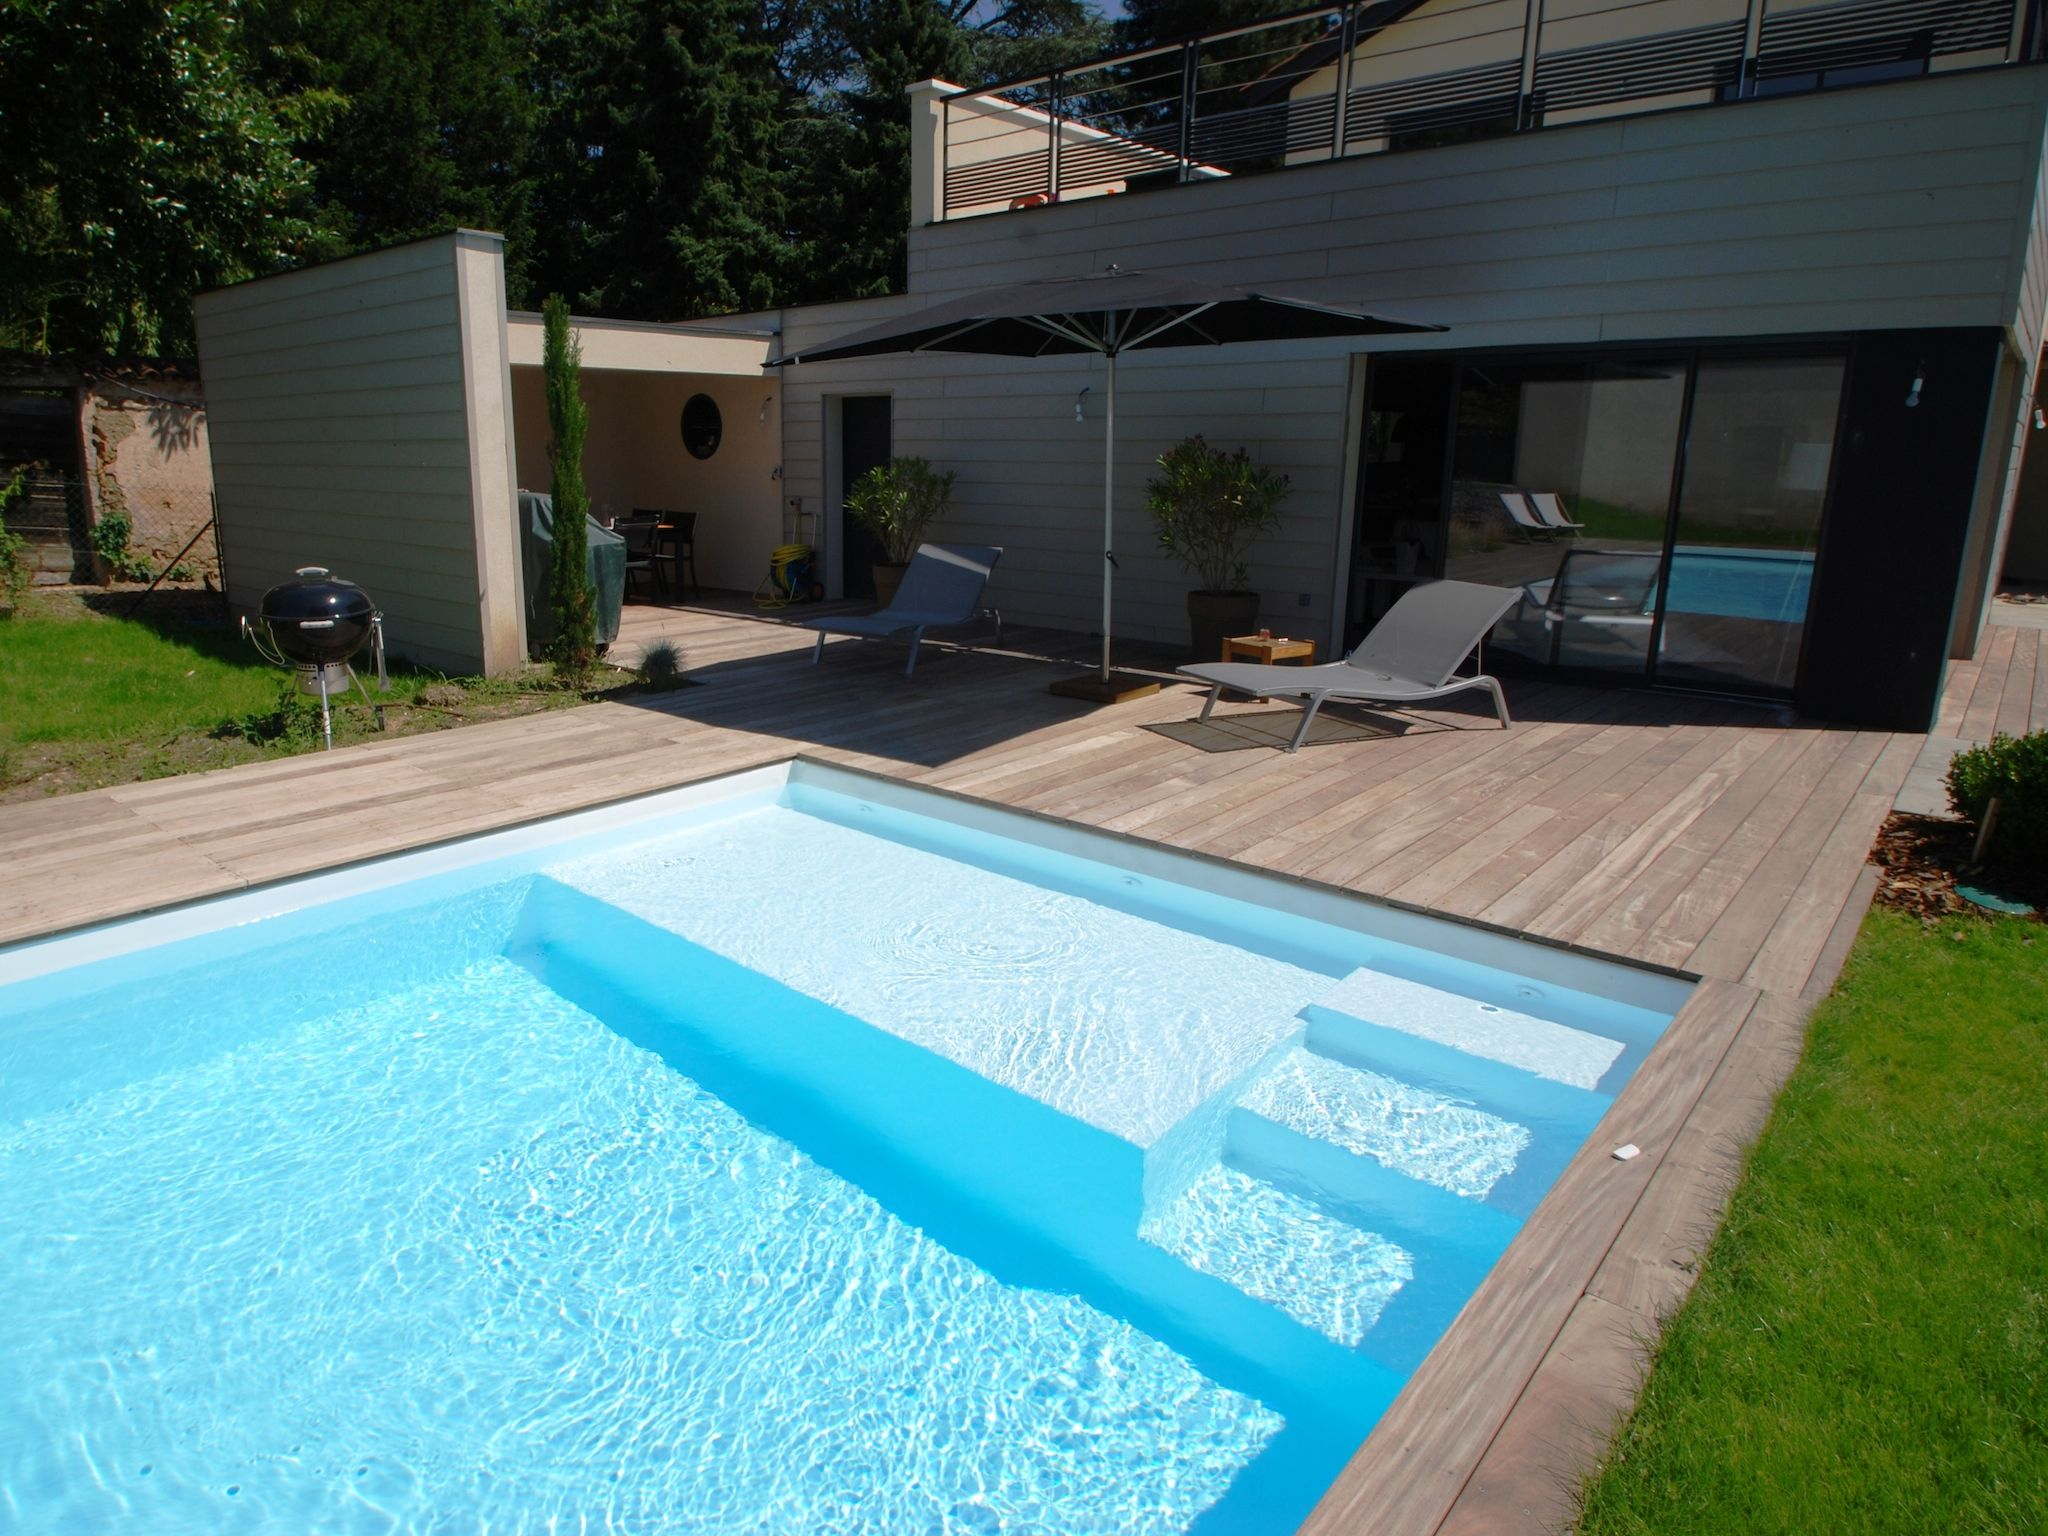 Votre escalier piscine pury piscines constrction piscine for Piscine yverdon